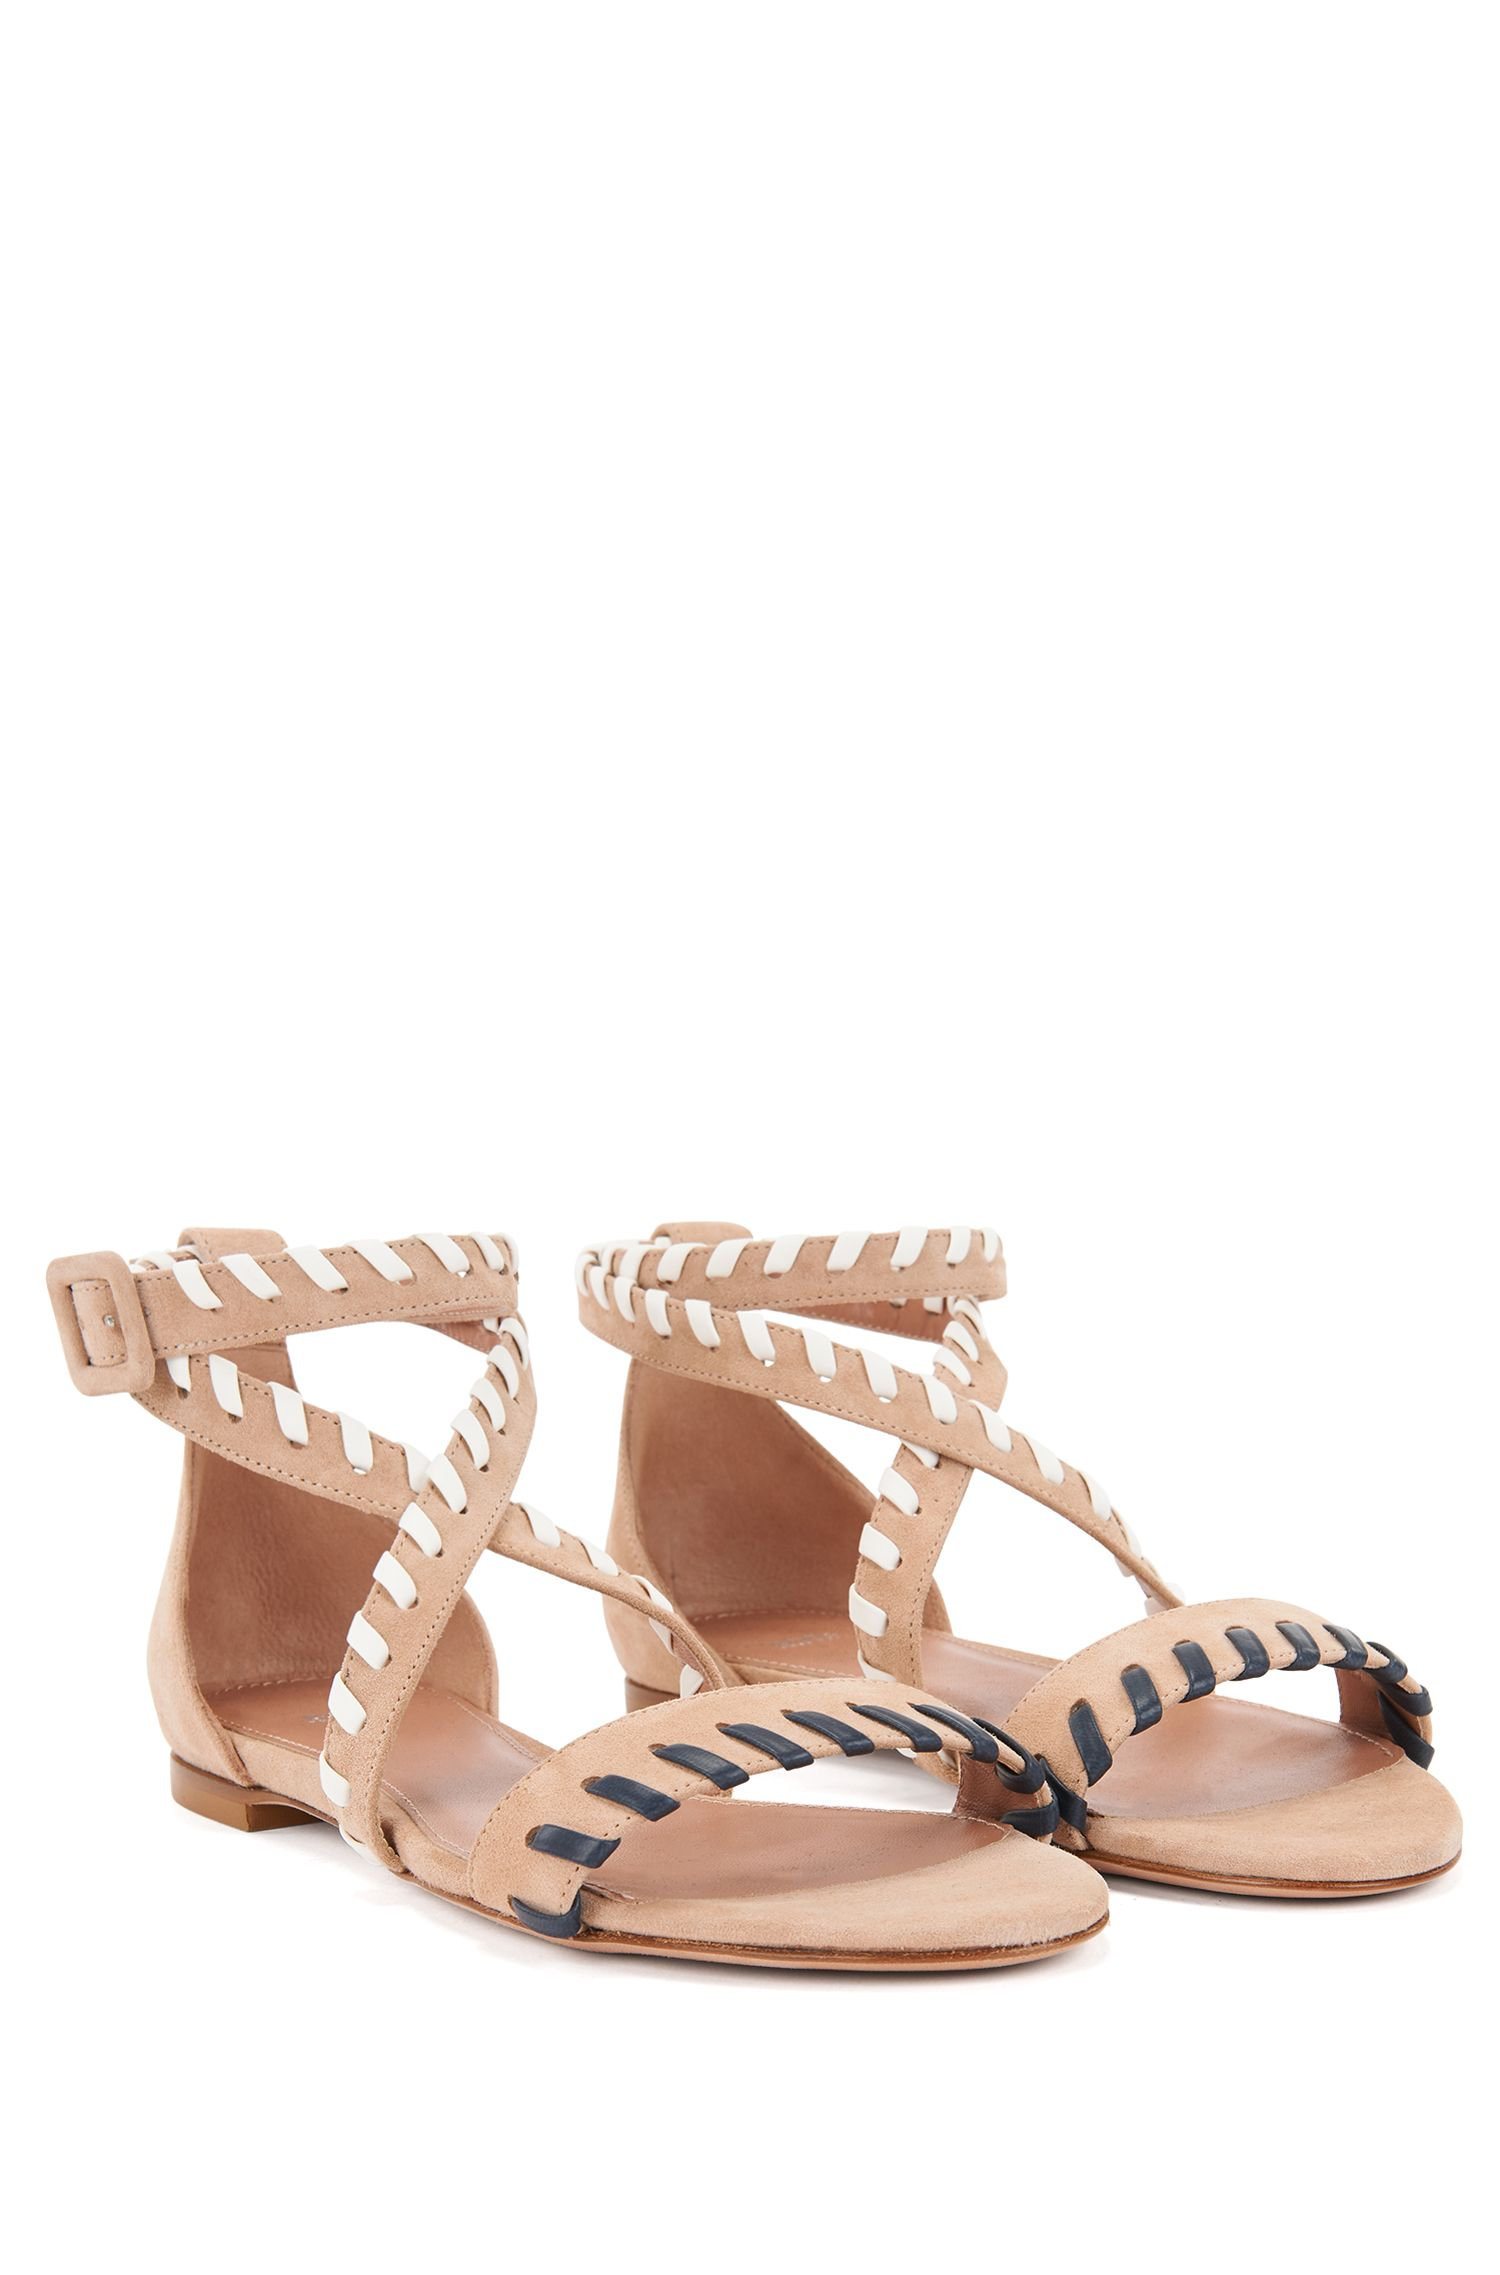 Flat suede sandals with whipstitching